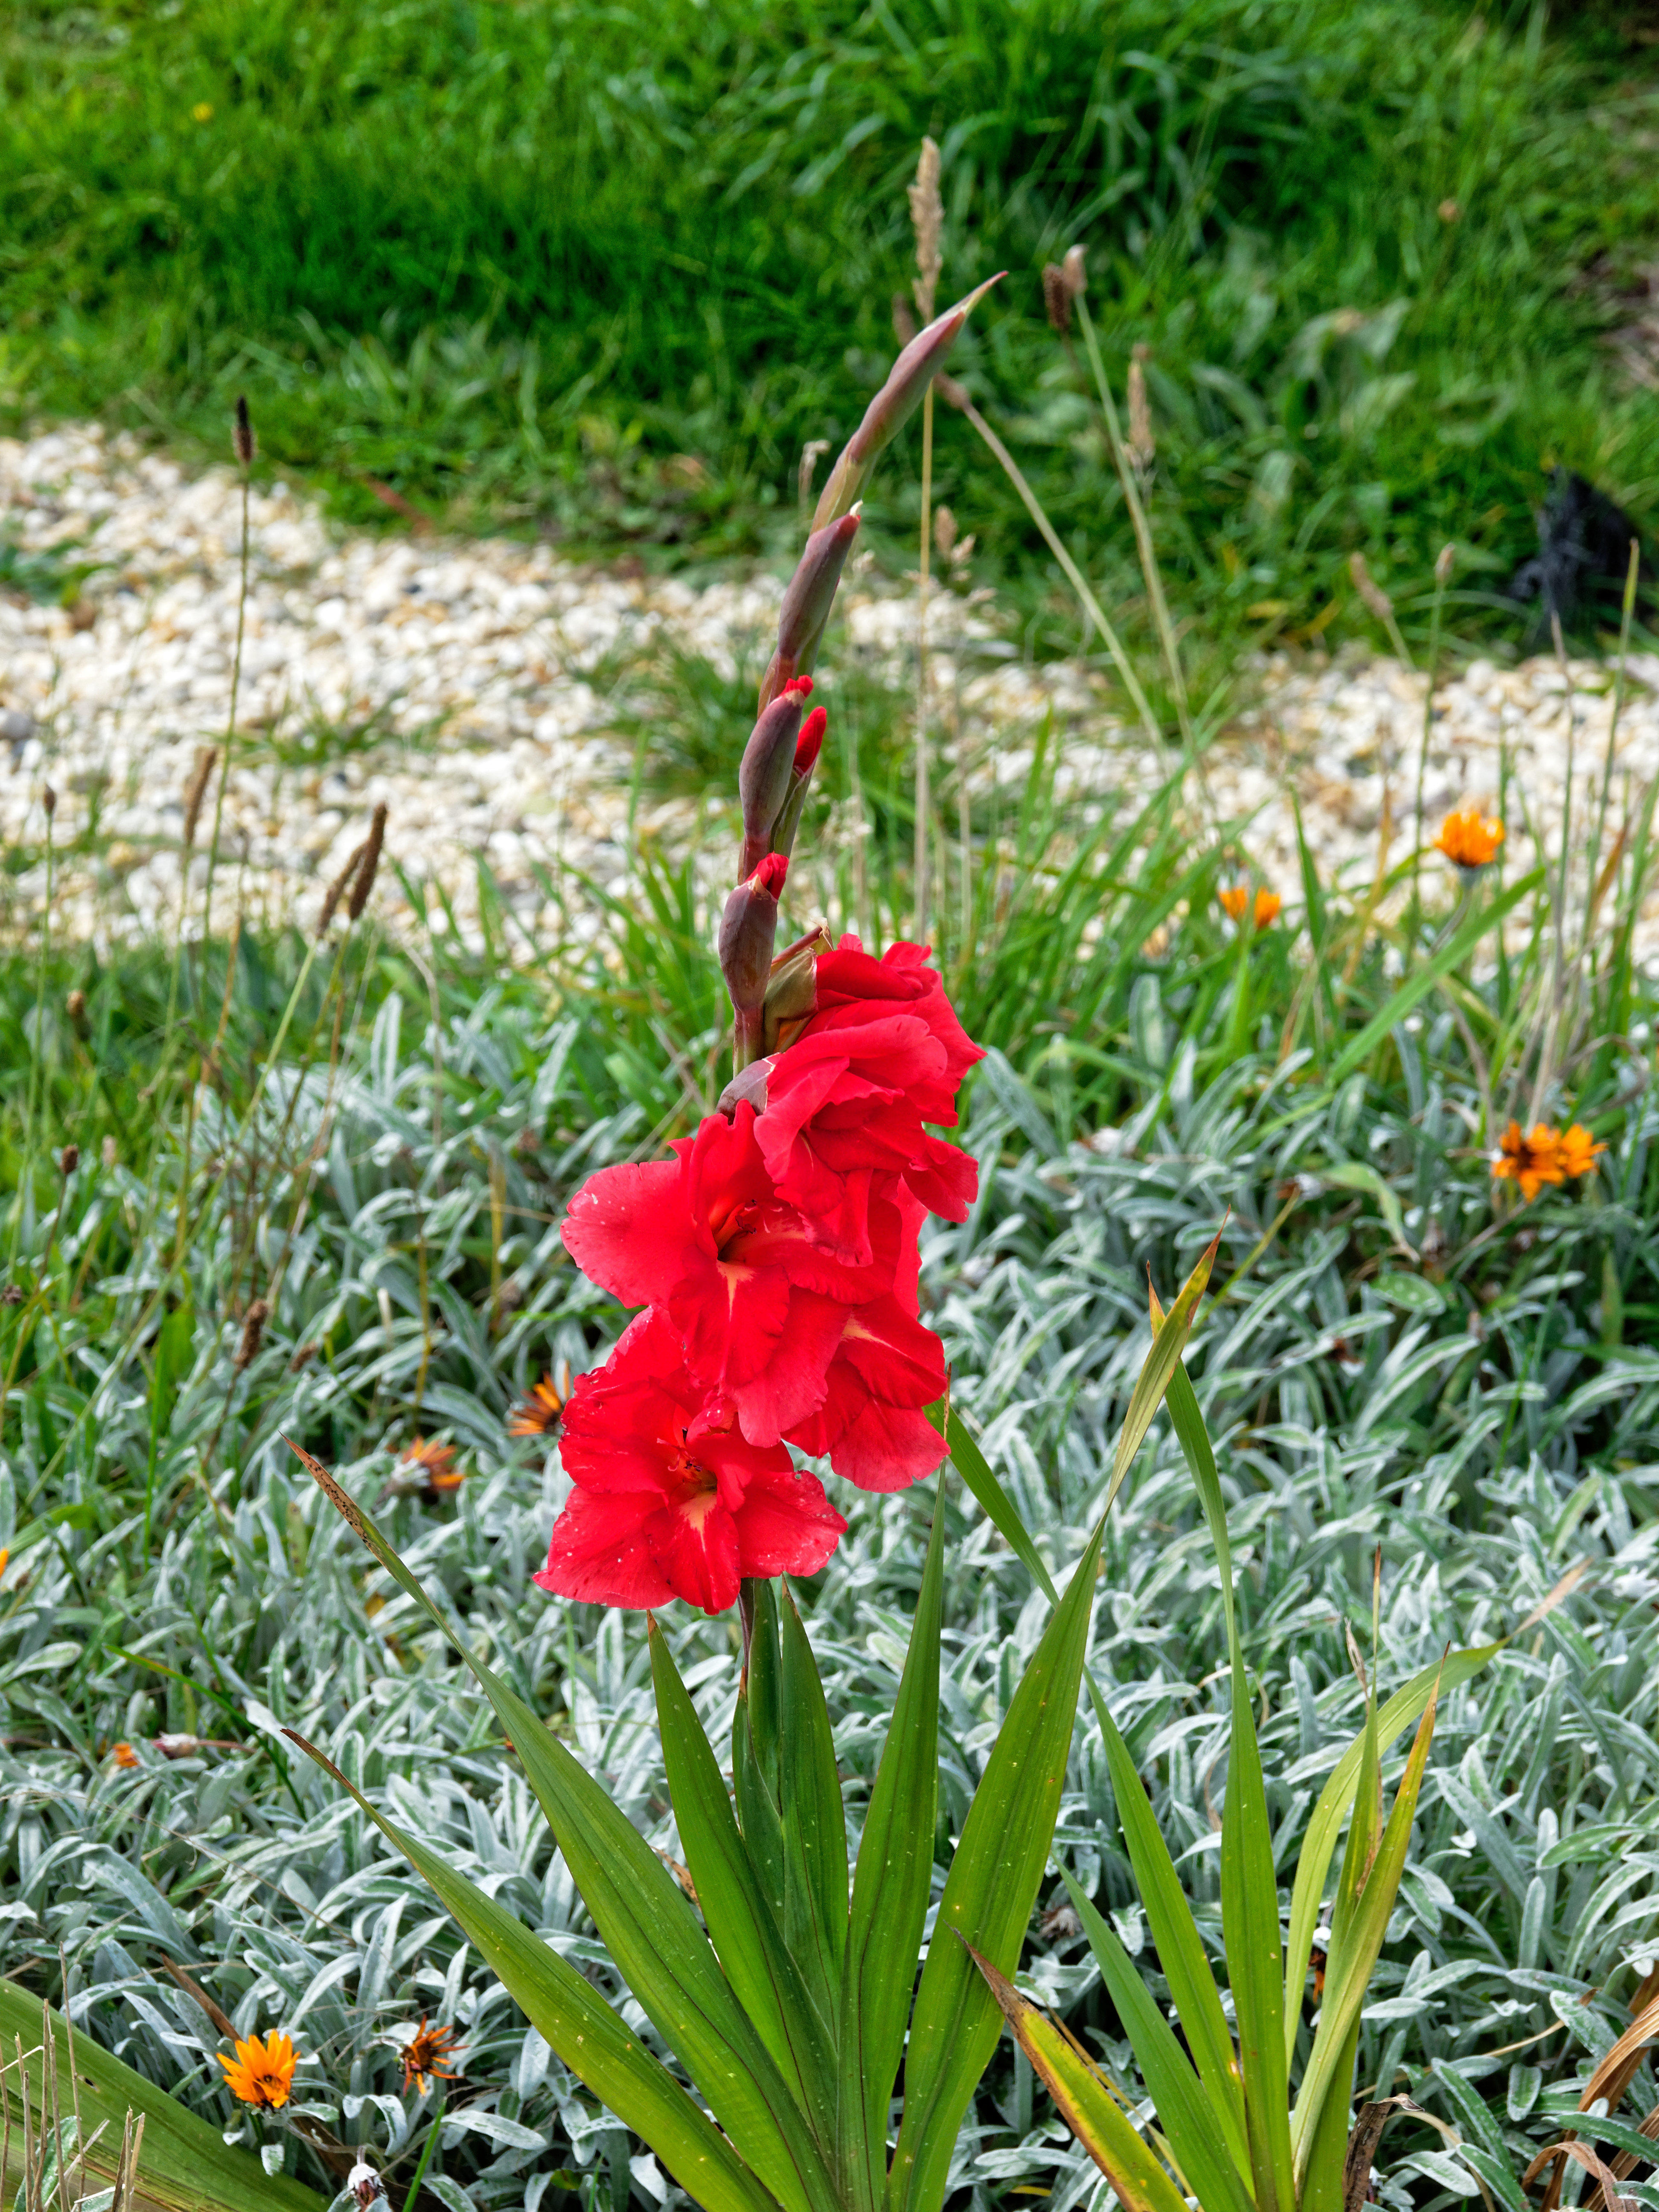 This should be Gladiolus-1.jpeg.  Is it missing?